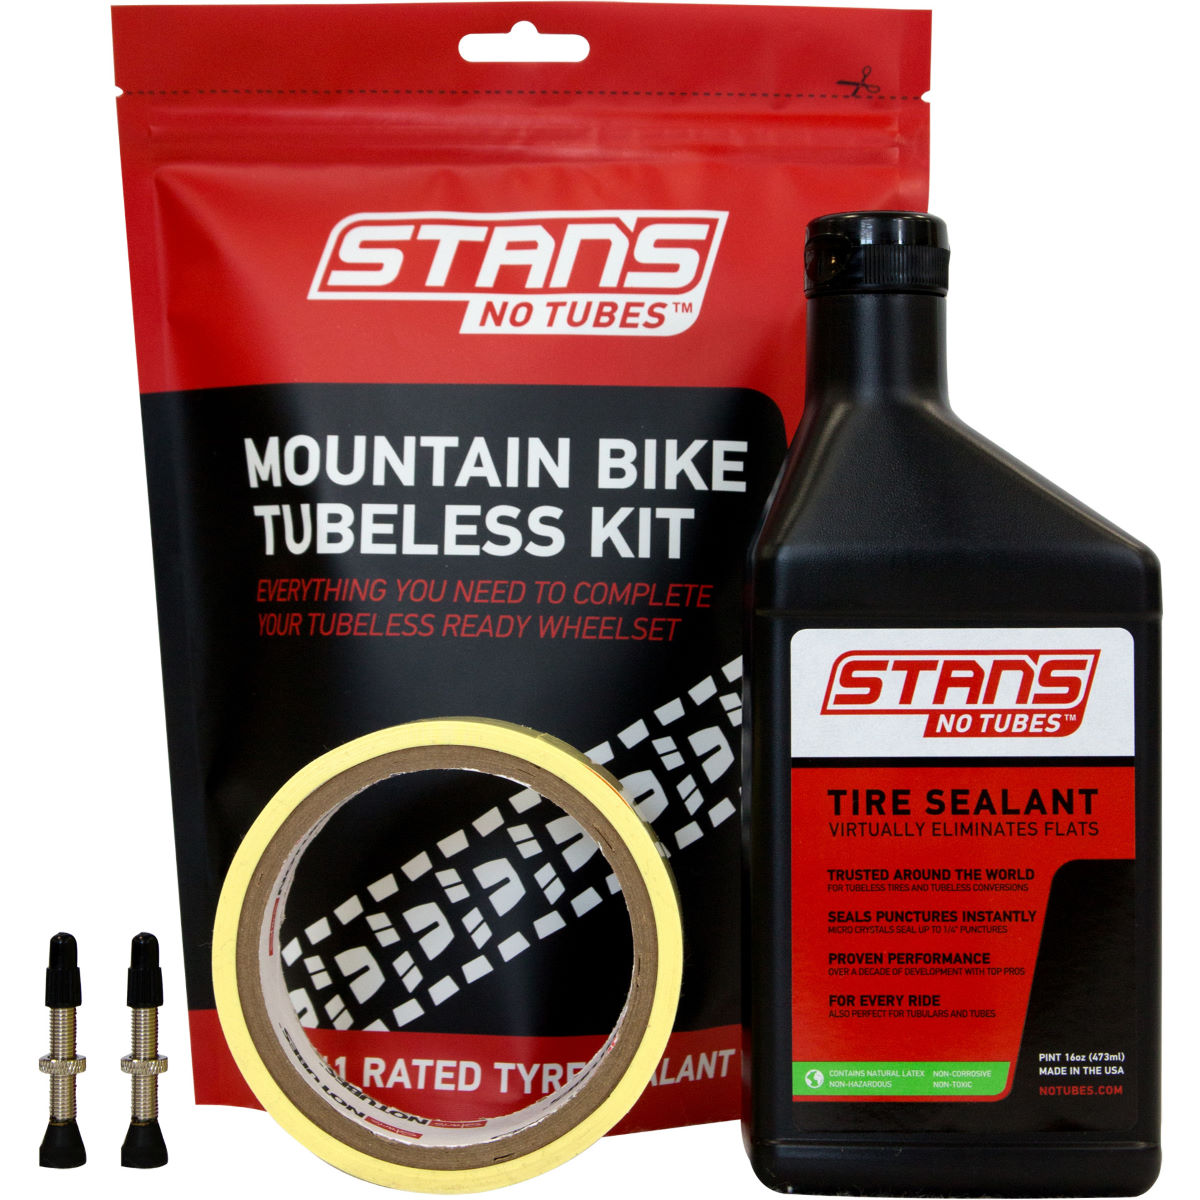 Stans No Tubes MTB Tubeless Tyre Kit   Tyre Spares